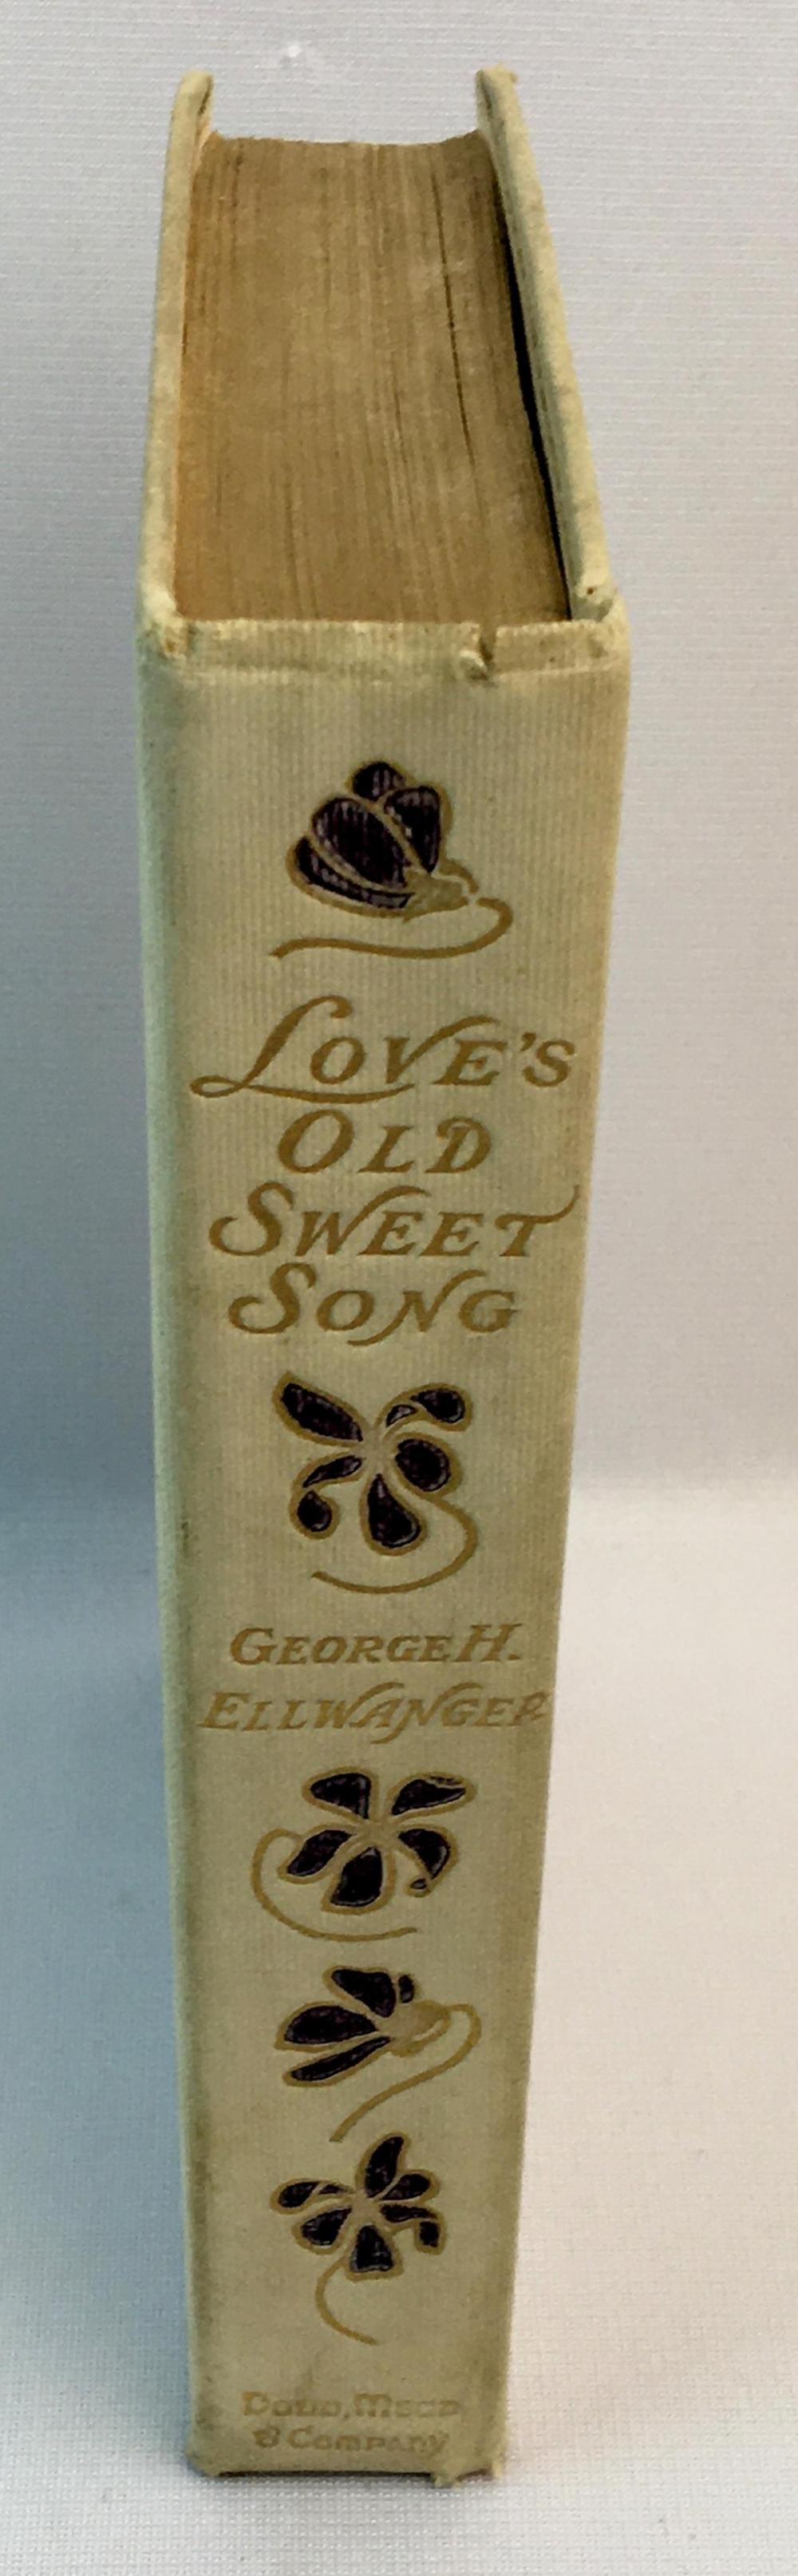 1903 Love's Old Sweet Song: A Sheaf of Latter-Day Love Poems by George H. Ellwanger